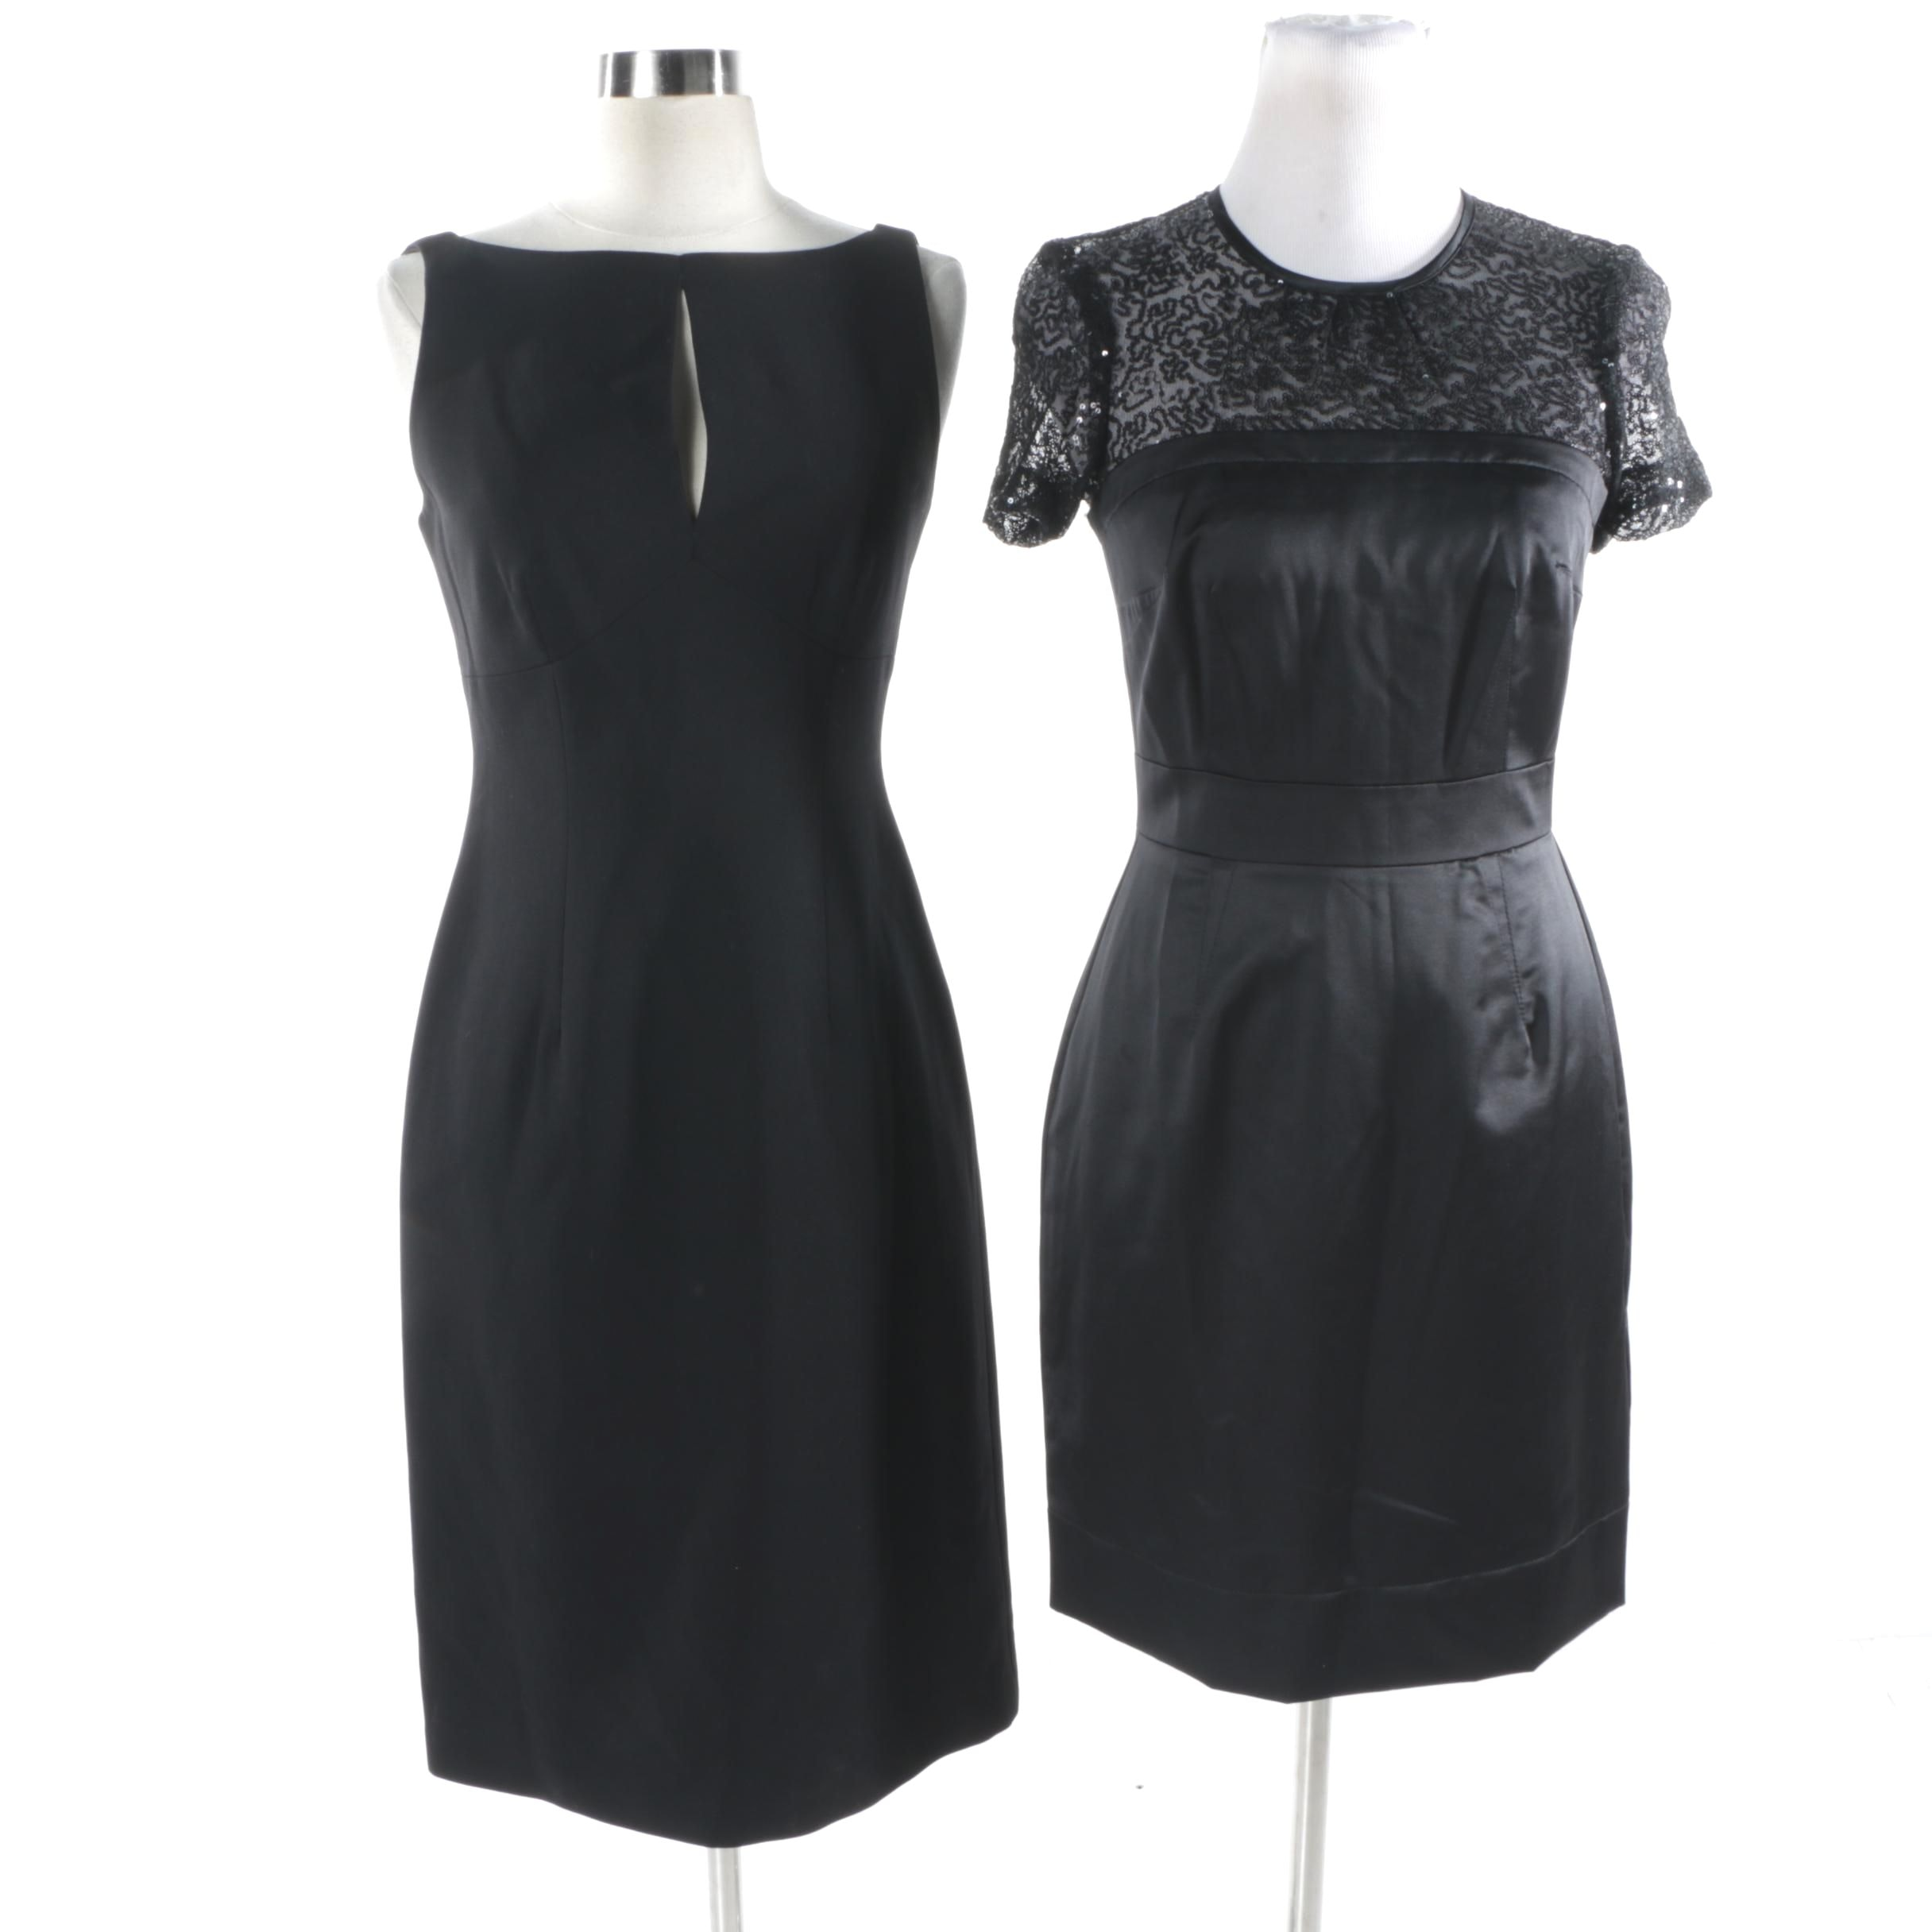 Trina Turk and BCBG Max Azria Essentials Black Cocktail Dresses